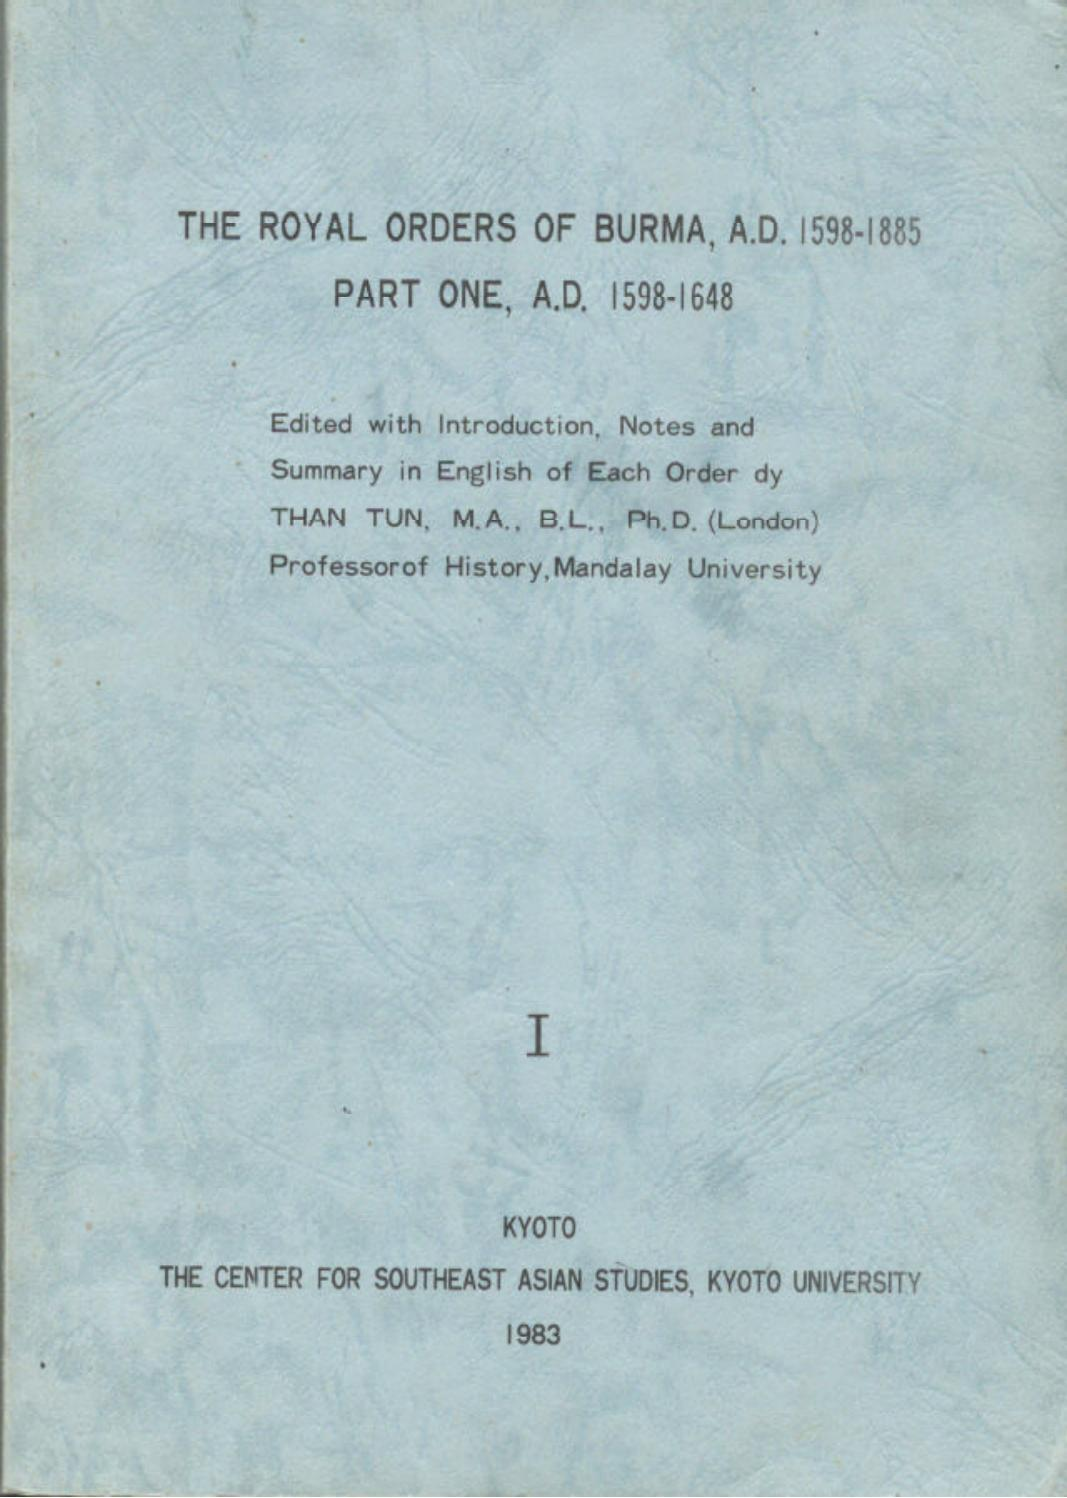 1-The Royal Orders of Burma, A D  1598-1885 Part One (A D